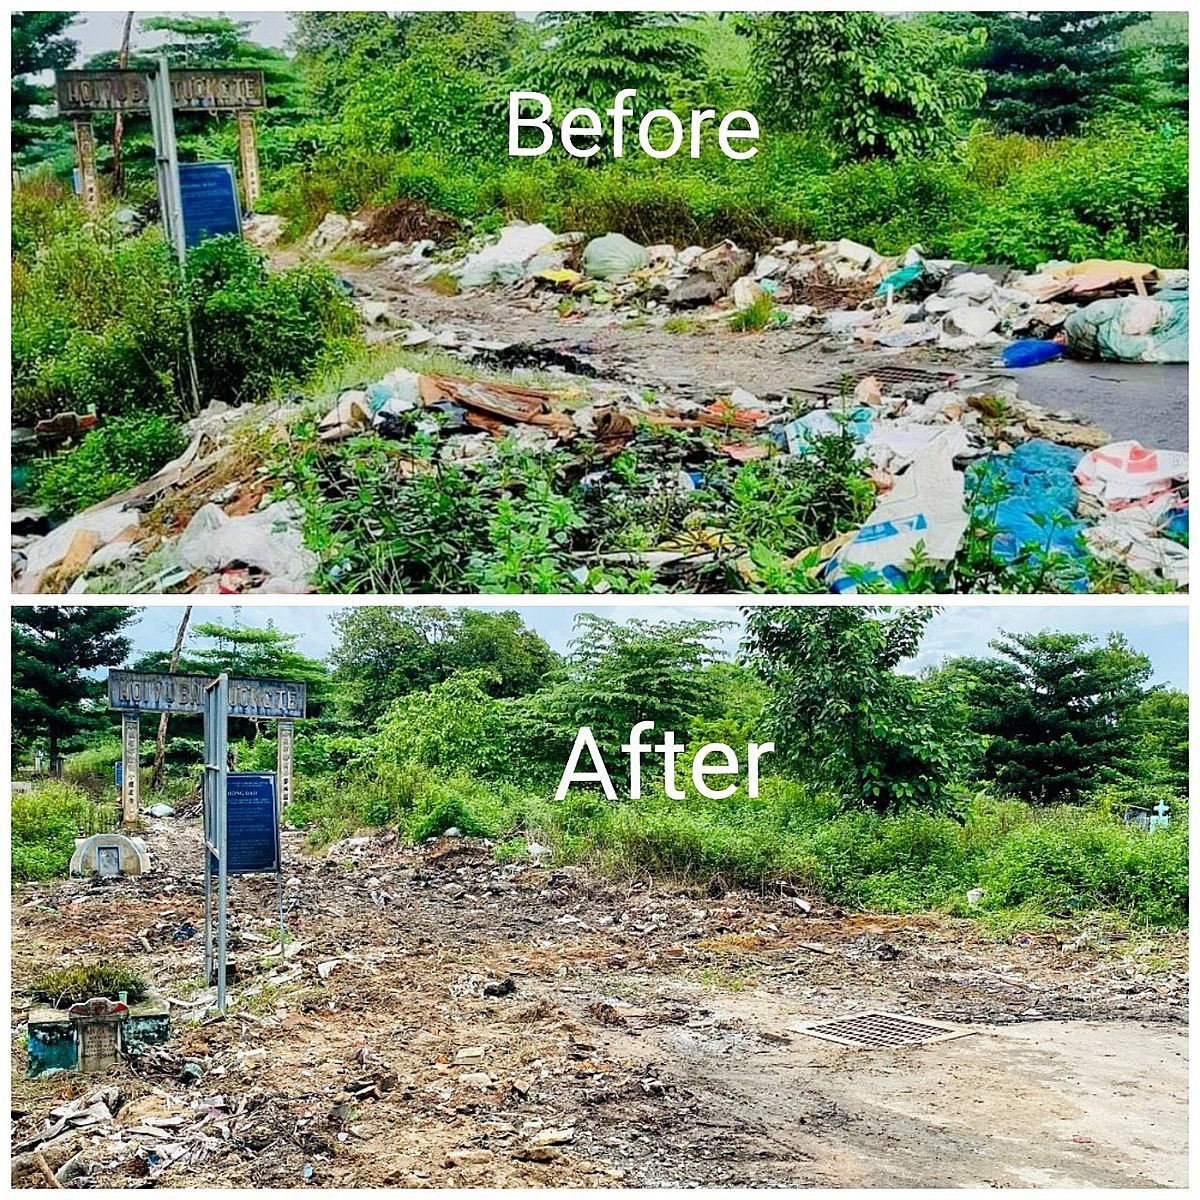 The gate of Binh Hung Hoa Cemetery in Saigons Binh Tan District before and after Cucs clean-up activity on October 11, 2020. Photo courtesy of Giang Thi Kim Cuc.